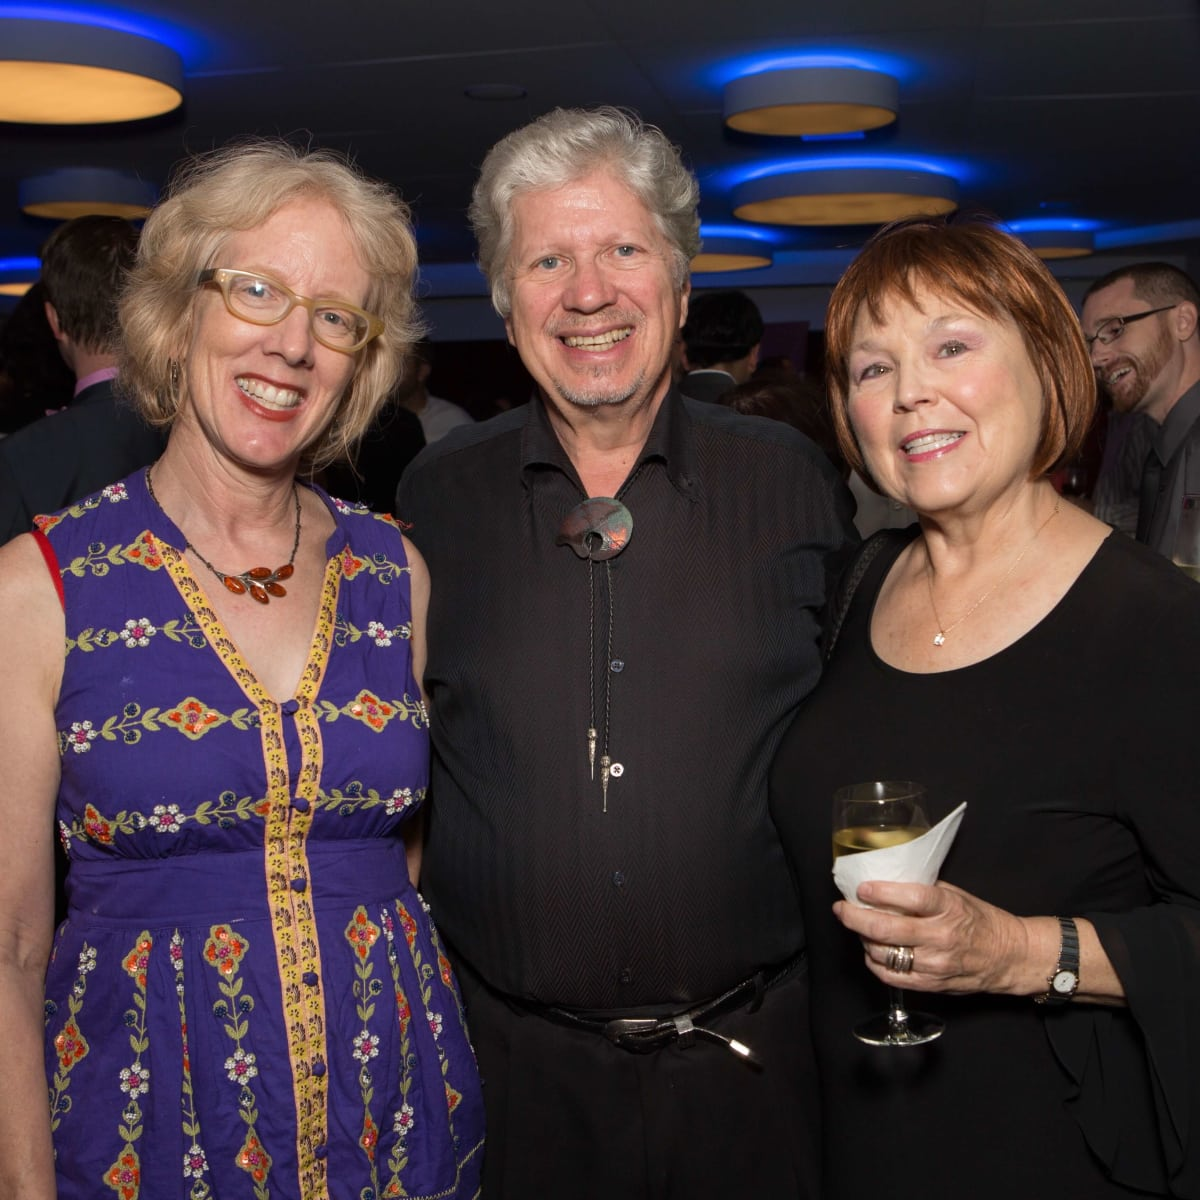 HCAF Kick-Off Party: Sarah Gish, Dave Walker, Maureen Herzog